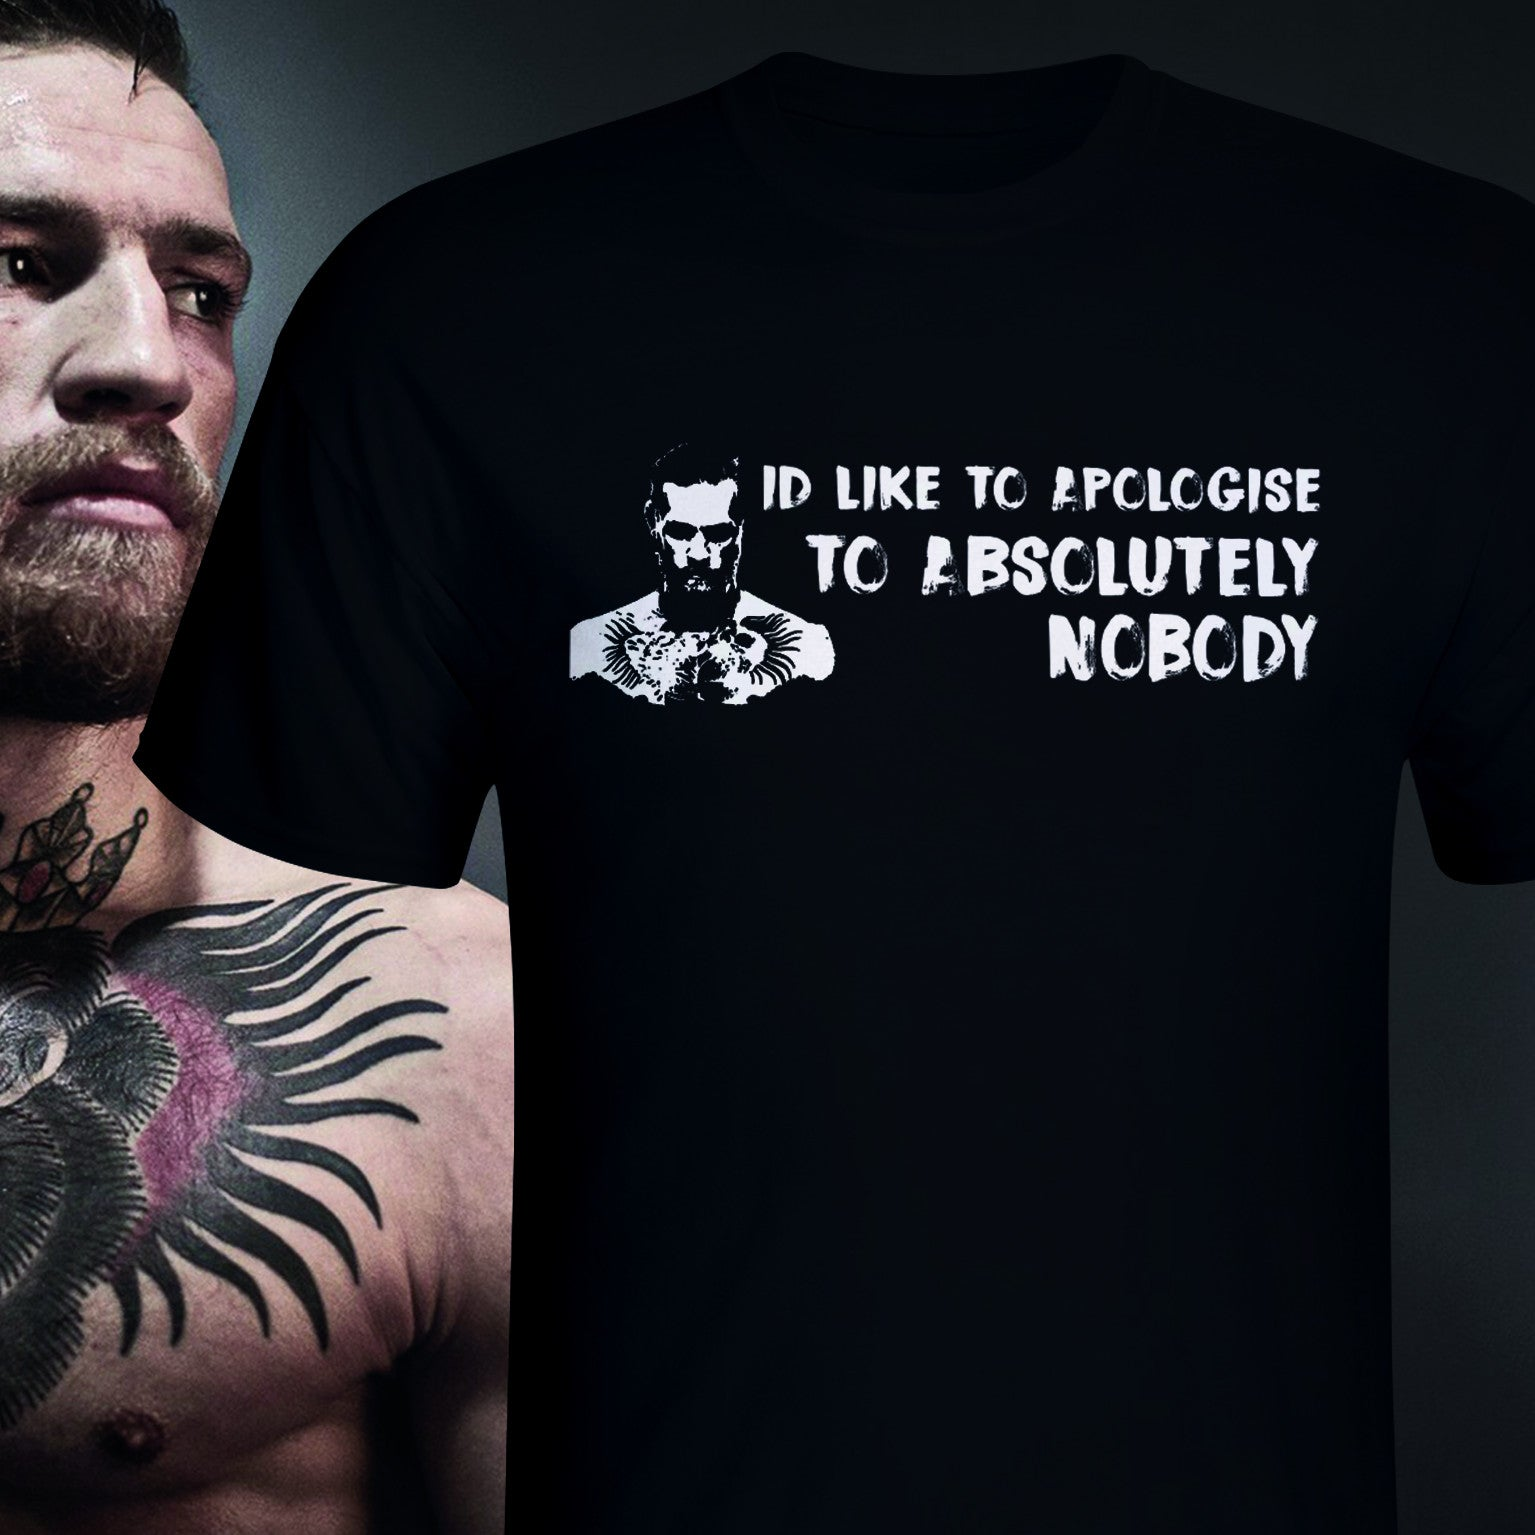 Apologise to nobody - Conor McGregor quote T-shirt Black